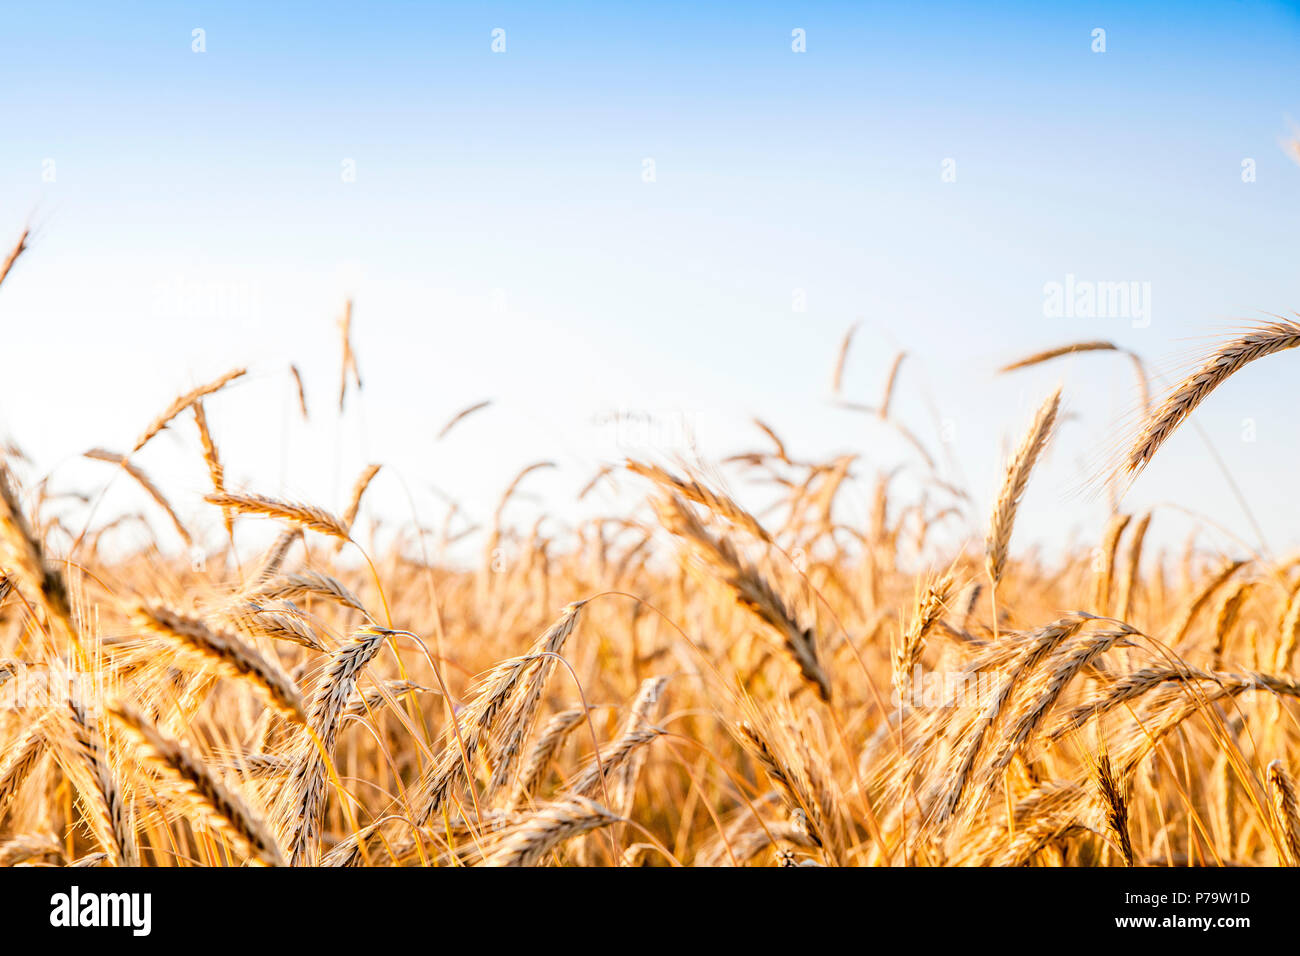 Rye and wheat fields ready for harvesting contrasting blue sky - Stock Image